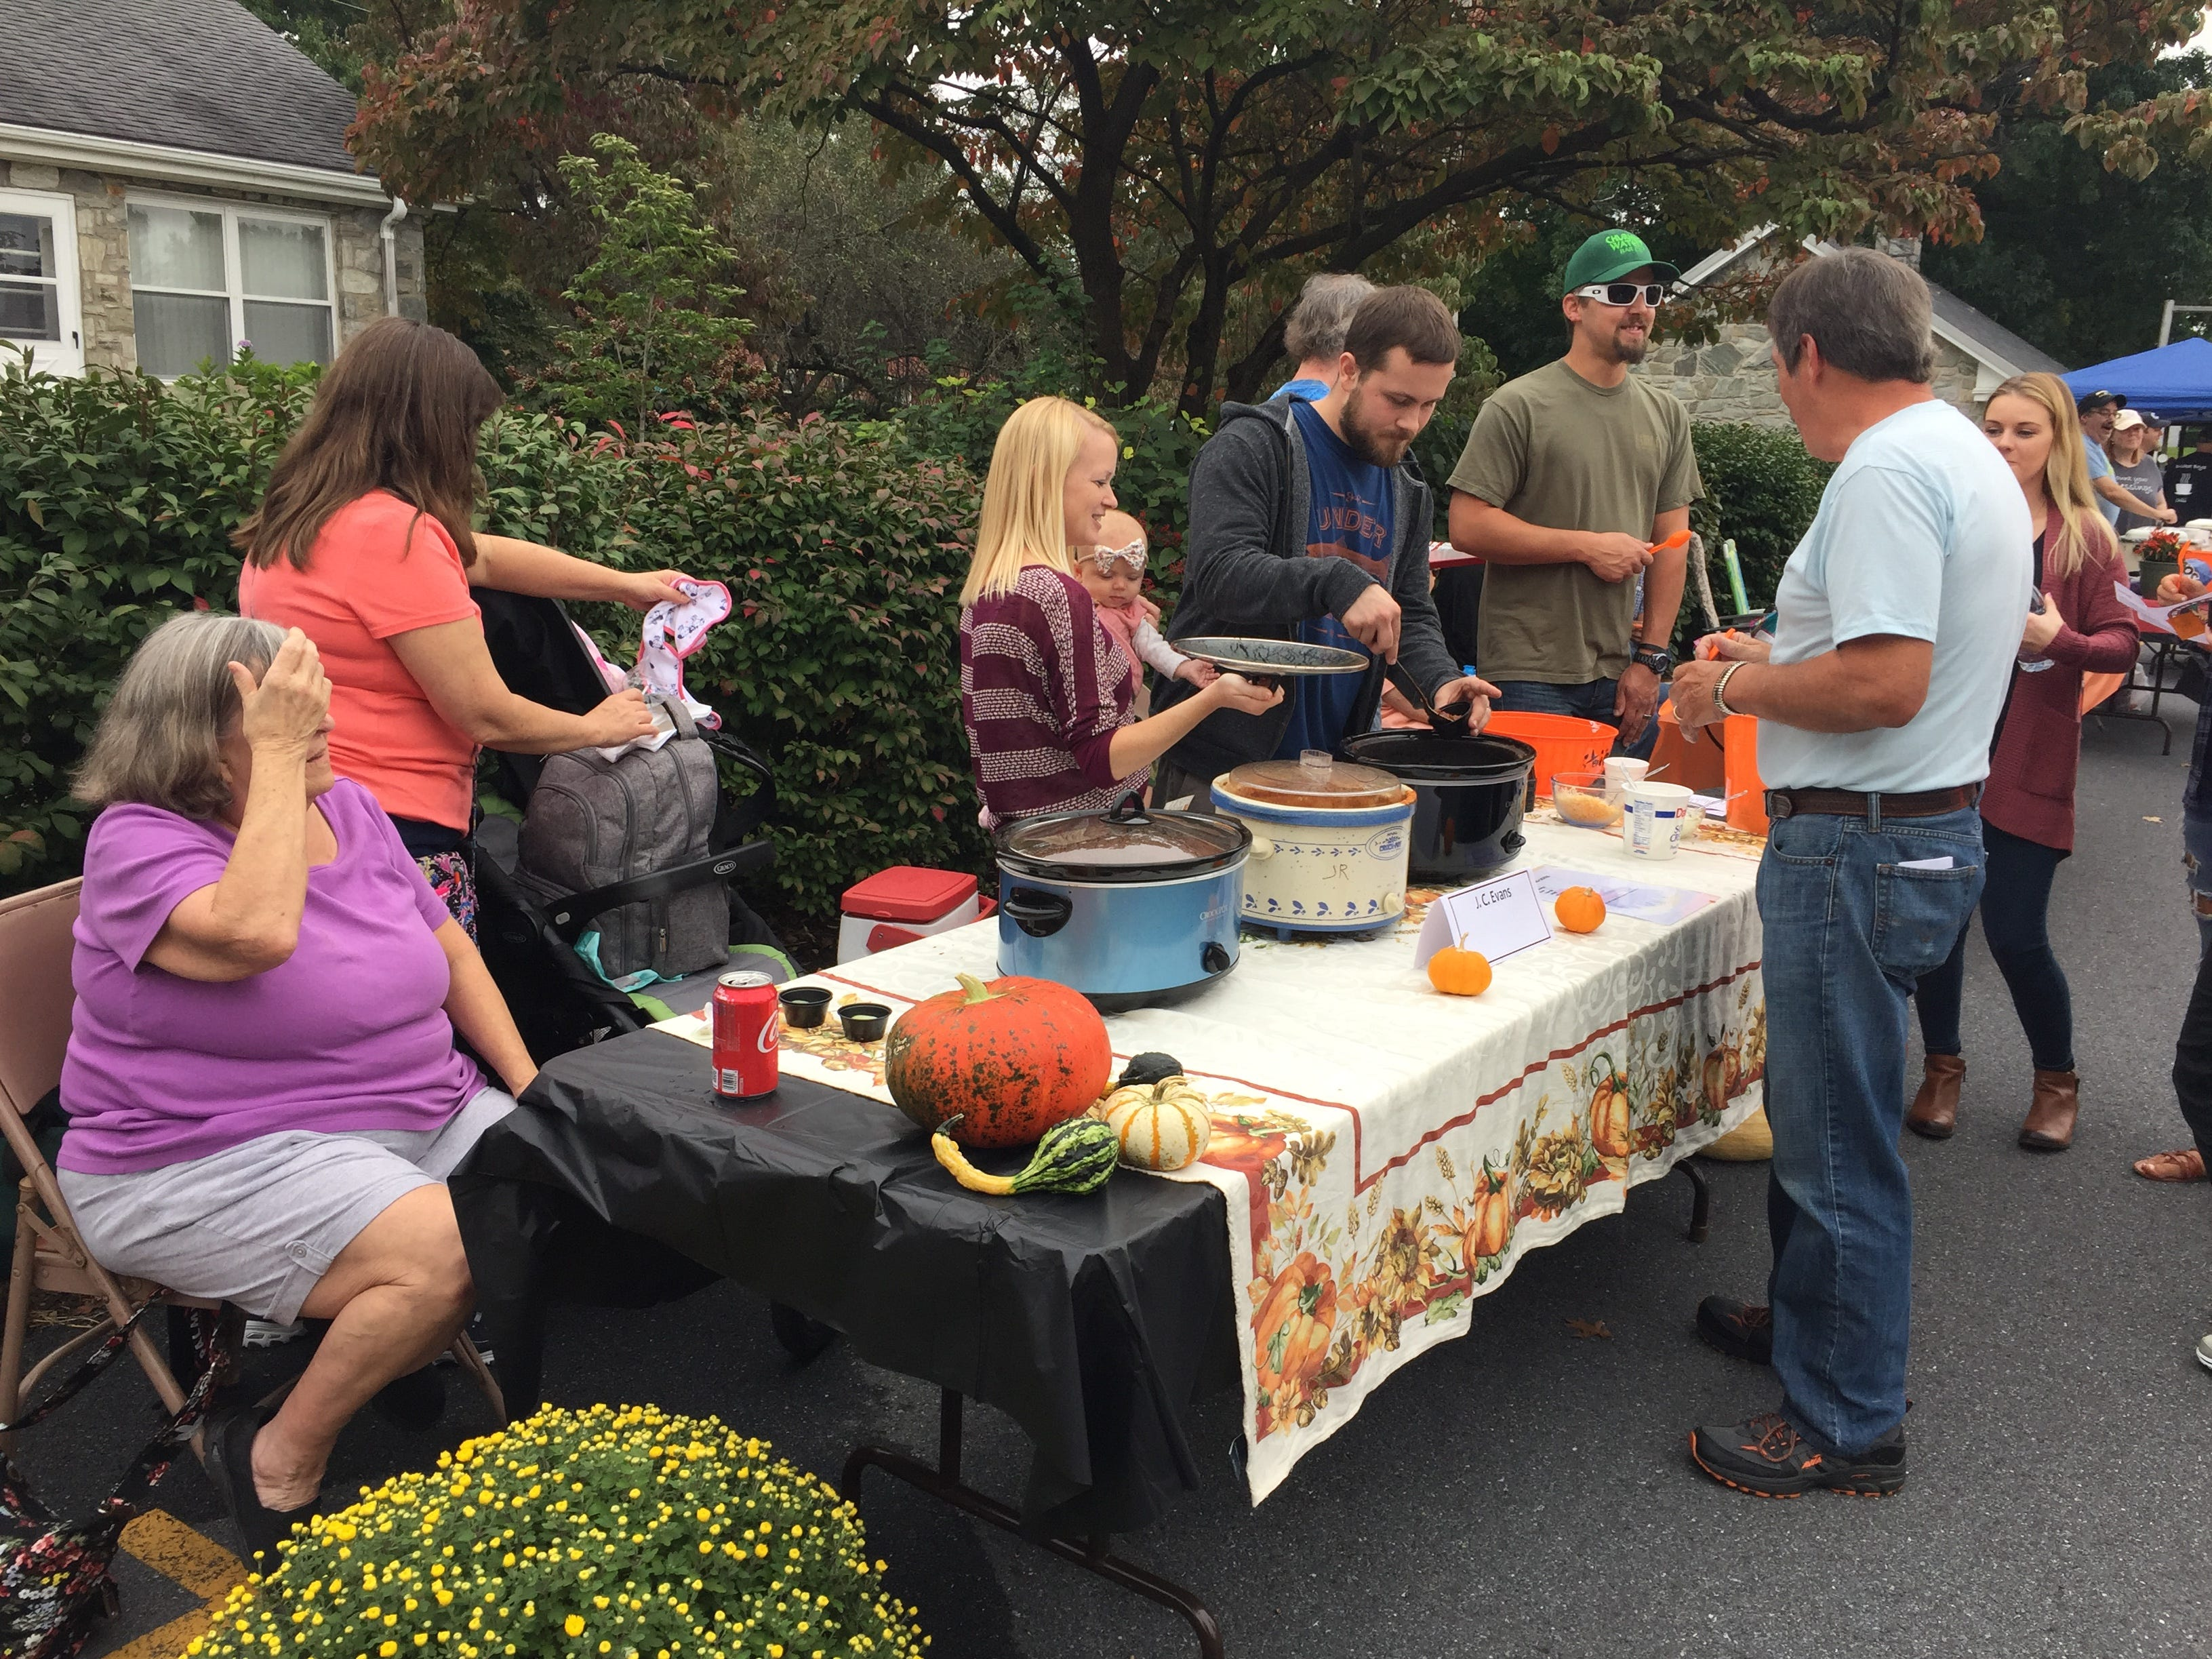 The third annual Palmyra Area Chilifest was held Saturday, Oct. 6 at First United Methodist Church in Palmyra. More than 15 cooks went after the People's Choice Award as the top chili chef in the region. A hot pepper eating contest was also conducted.